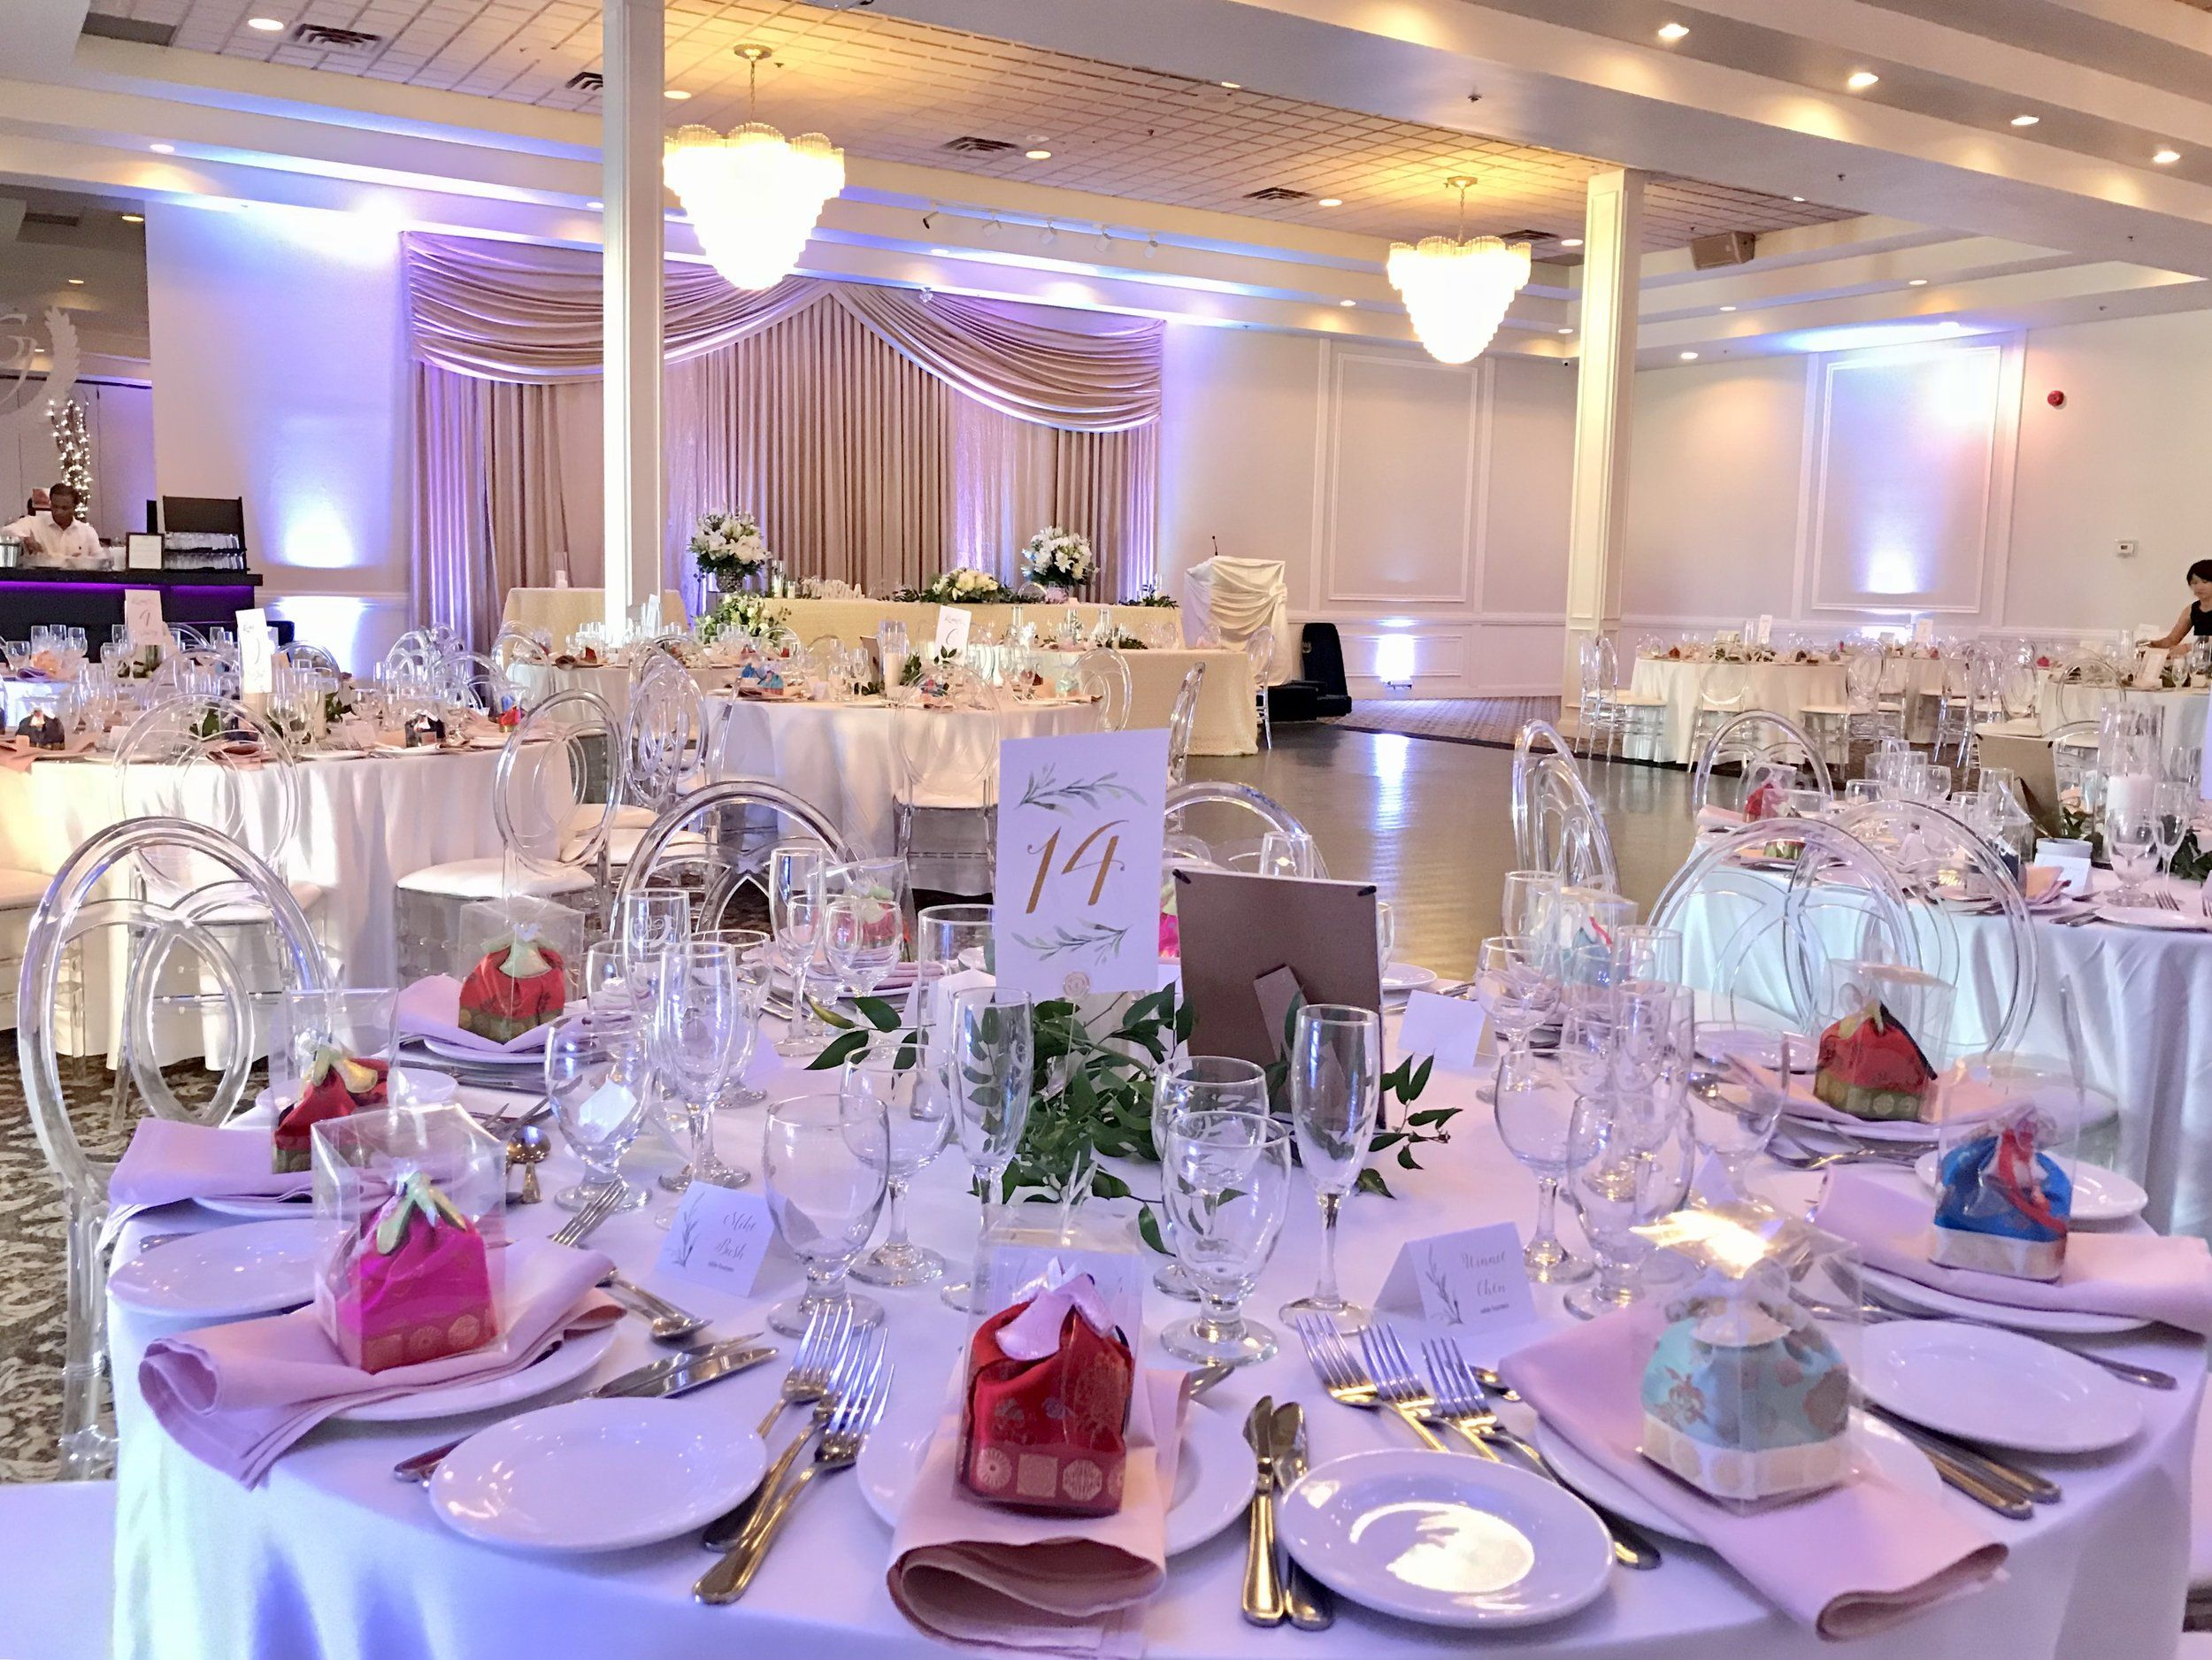 Banquet Hall Decorated For A Wedding Reception Gallery View Wedding Reception Hall Hall Decor Wedding Banquet Hall